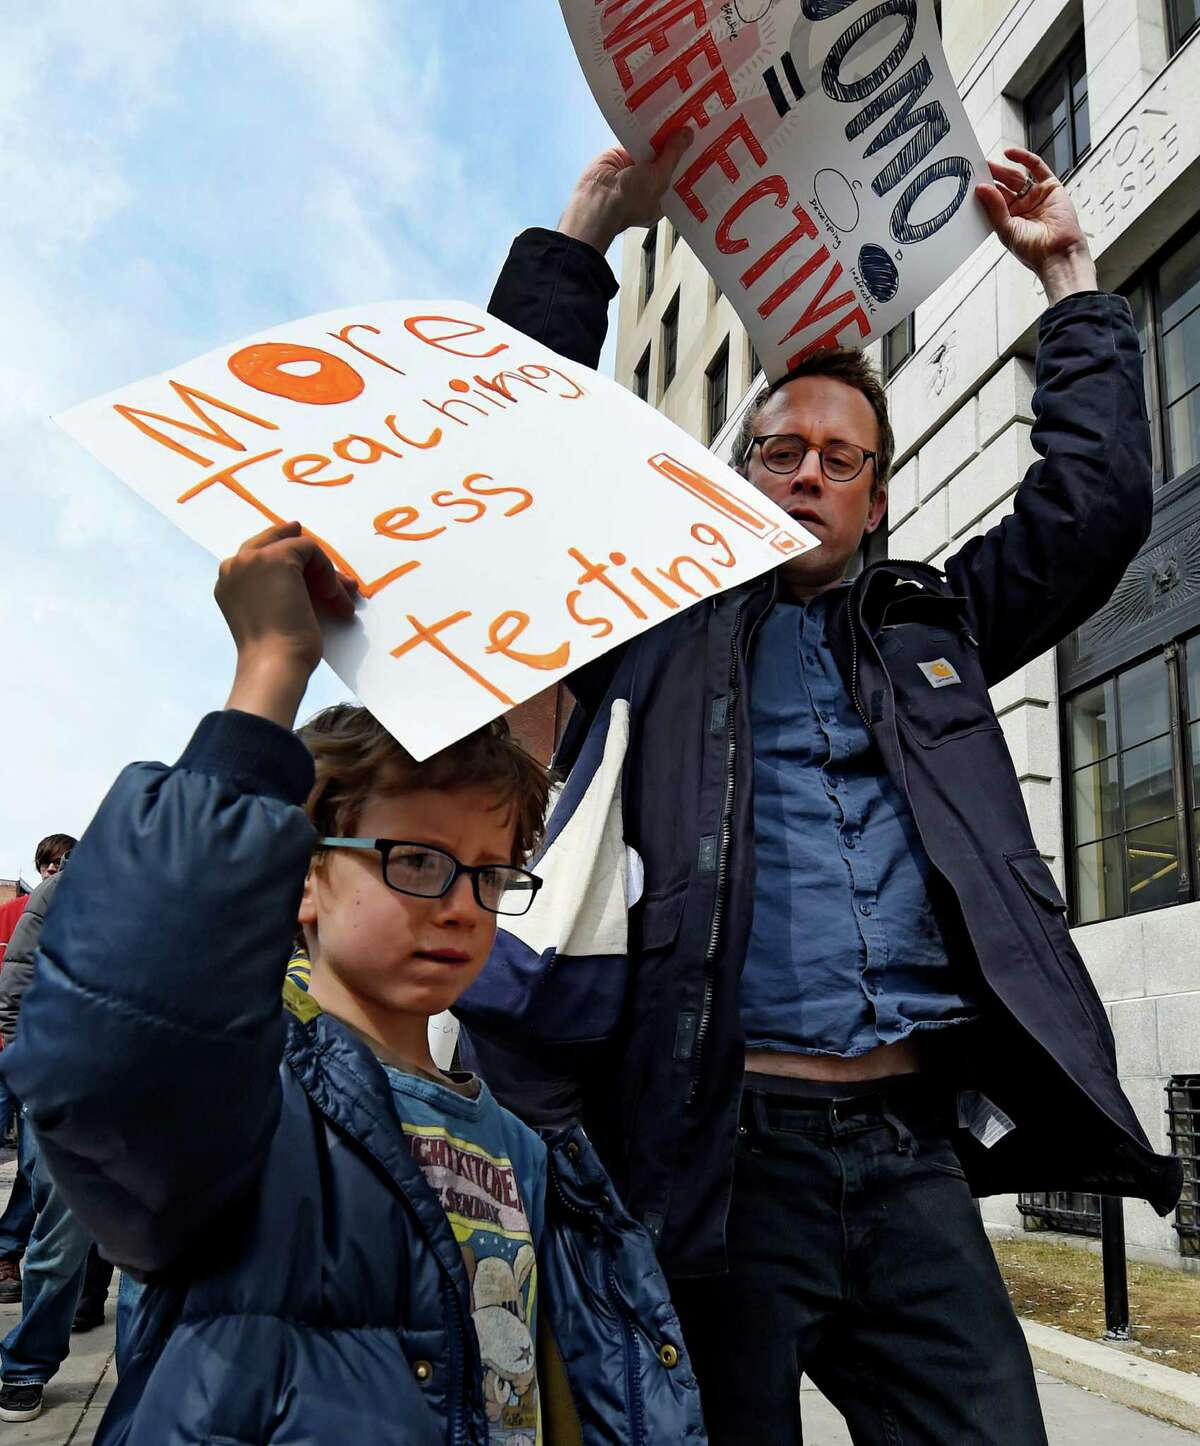 Gus Pauly, 7, marches with his father Ted Pauly of Brooklyn as they join a large group of people marching in the Parade for Public Education Wednesday afternoon, March 11, 2015, in Albany, N.Y. The demonstrators were showing their solidarity against Governor Cuomo's budget figures for public School. (Skip Dickstein/Times Union)